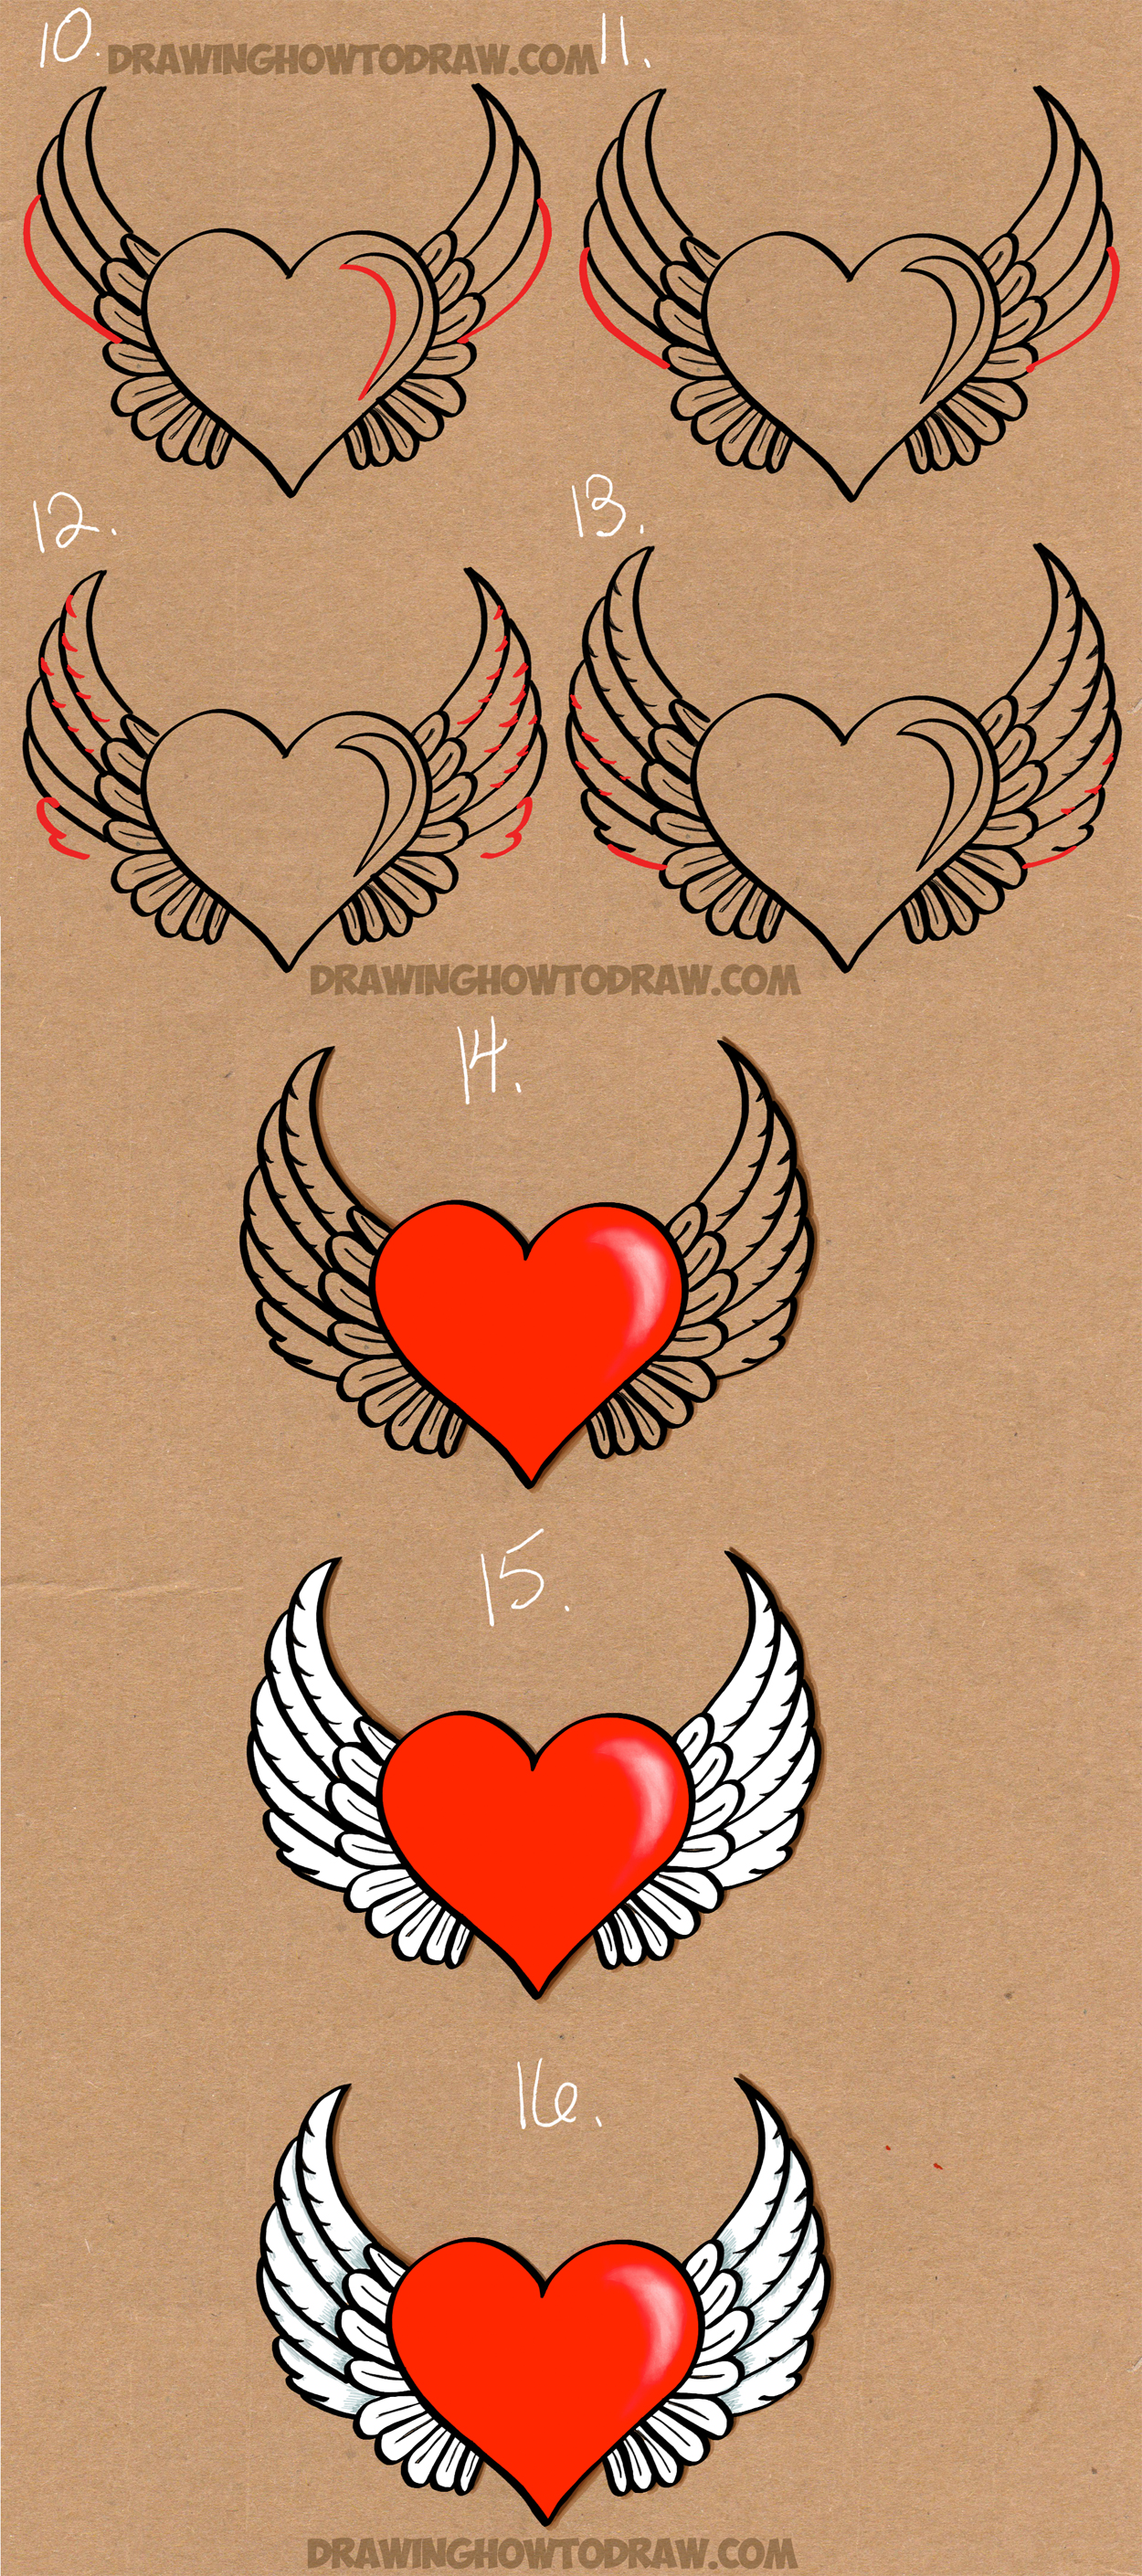 How To Draw A Heart With Wings Easy Step By Step Drawing Tutorial